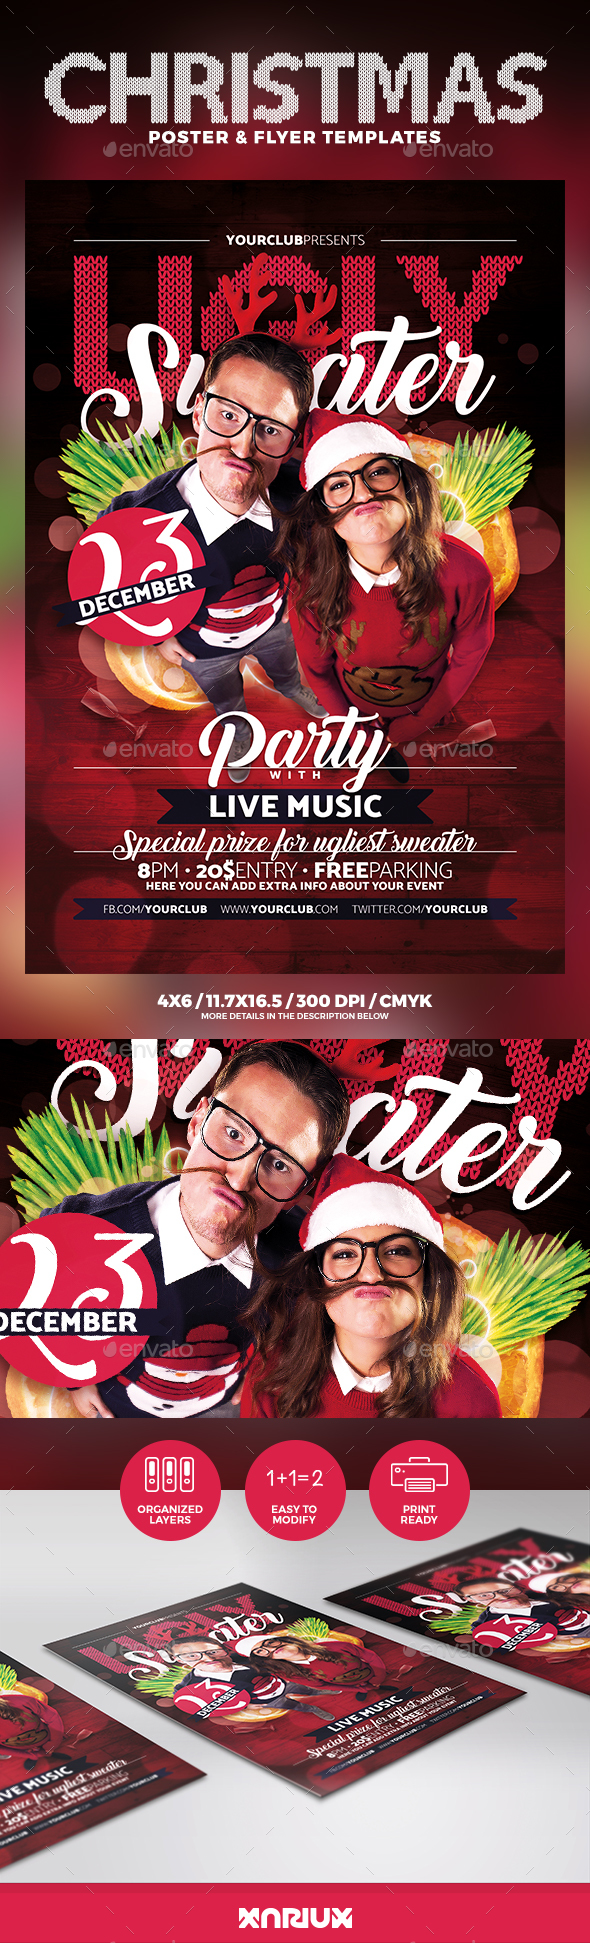 Ugly Sweater Party Flyer & Poster - Events Flyers